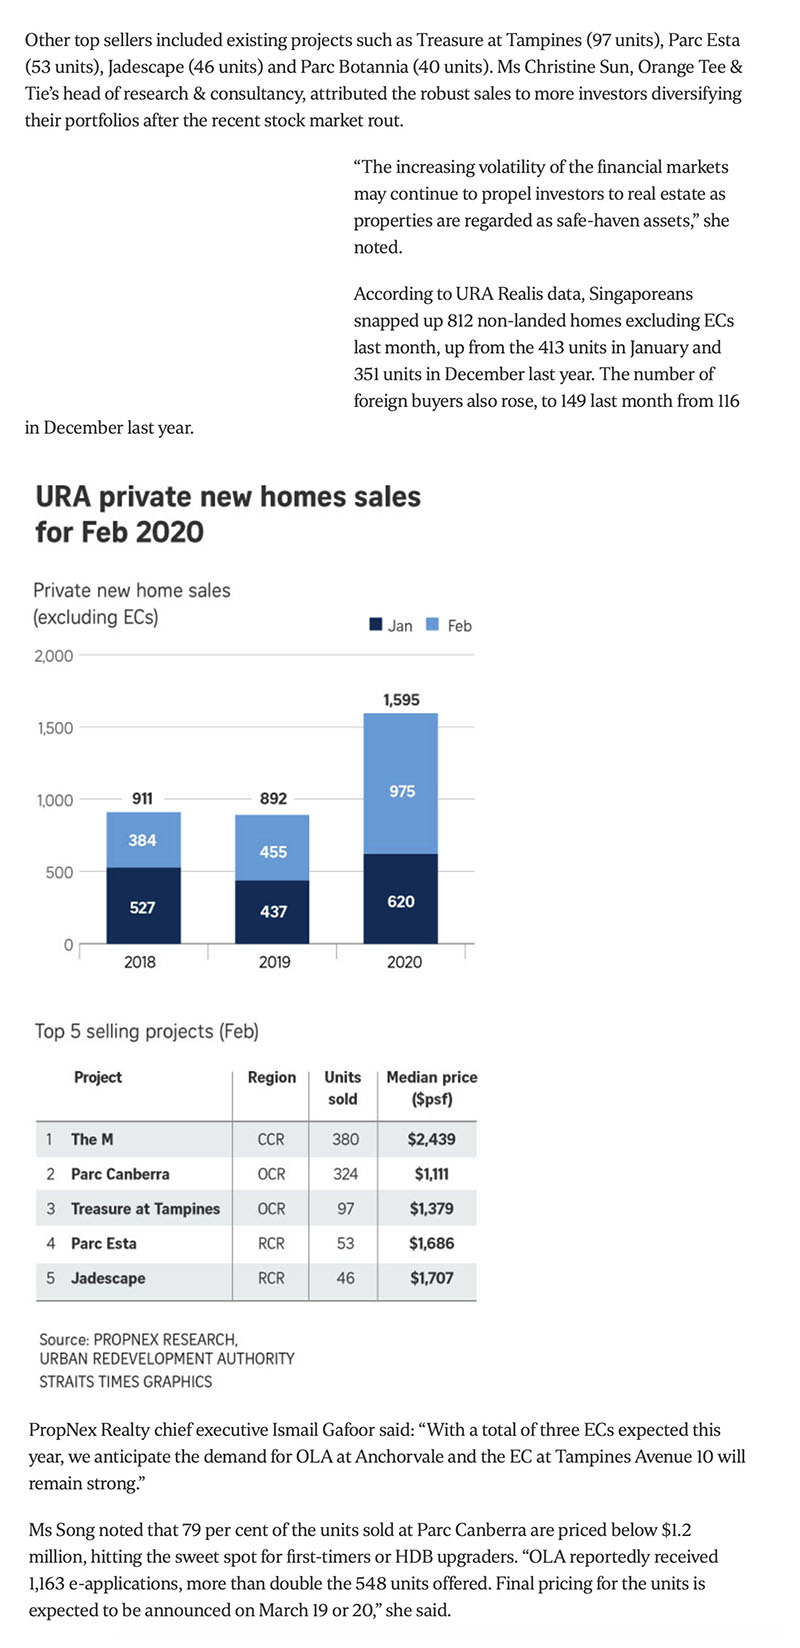 The Gazania - New private home sales in Singapore jumped 57.3 per cent in February 2